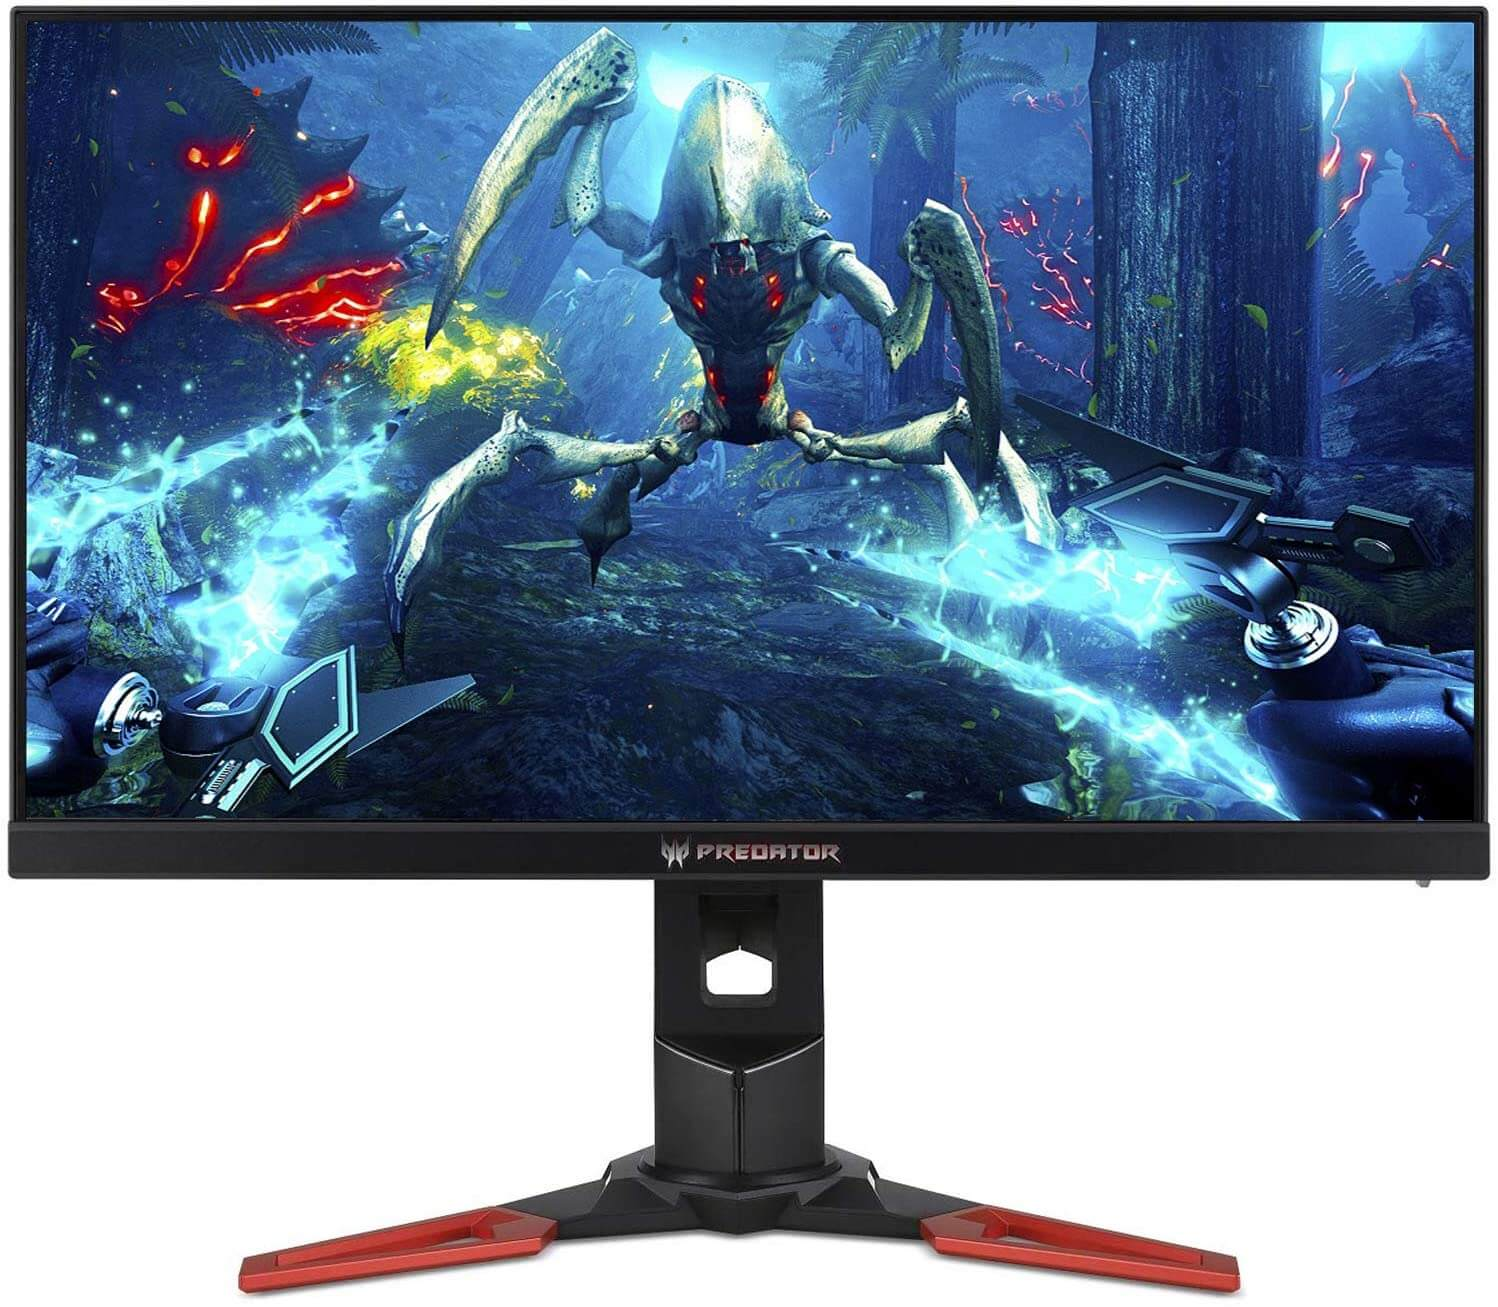 Acer Predator Monitor for WoW